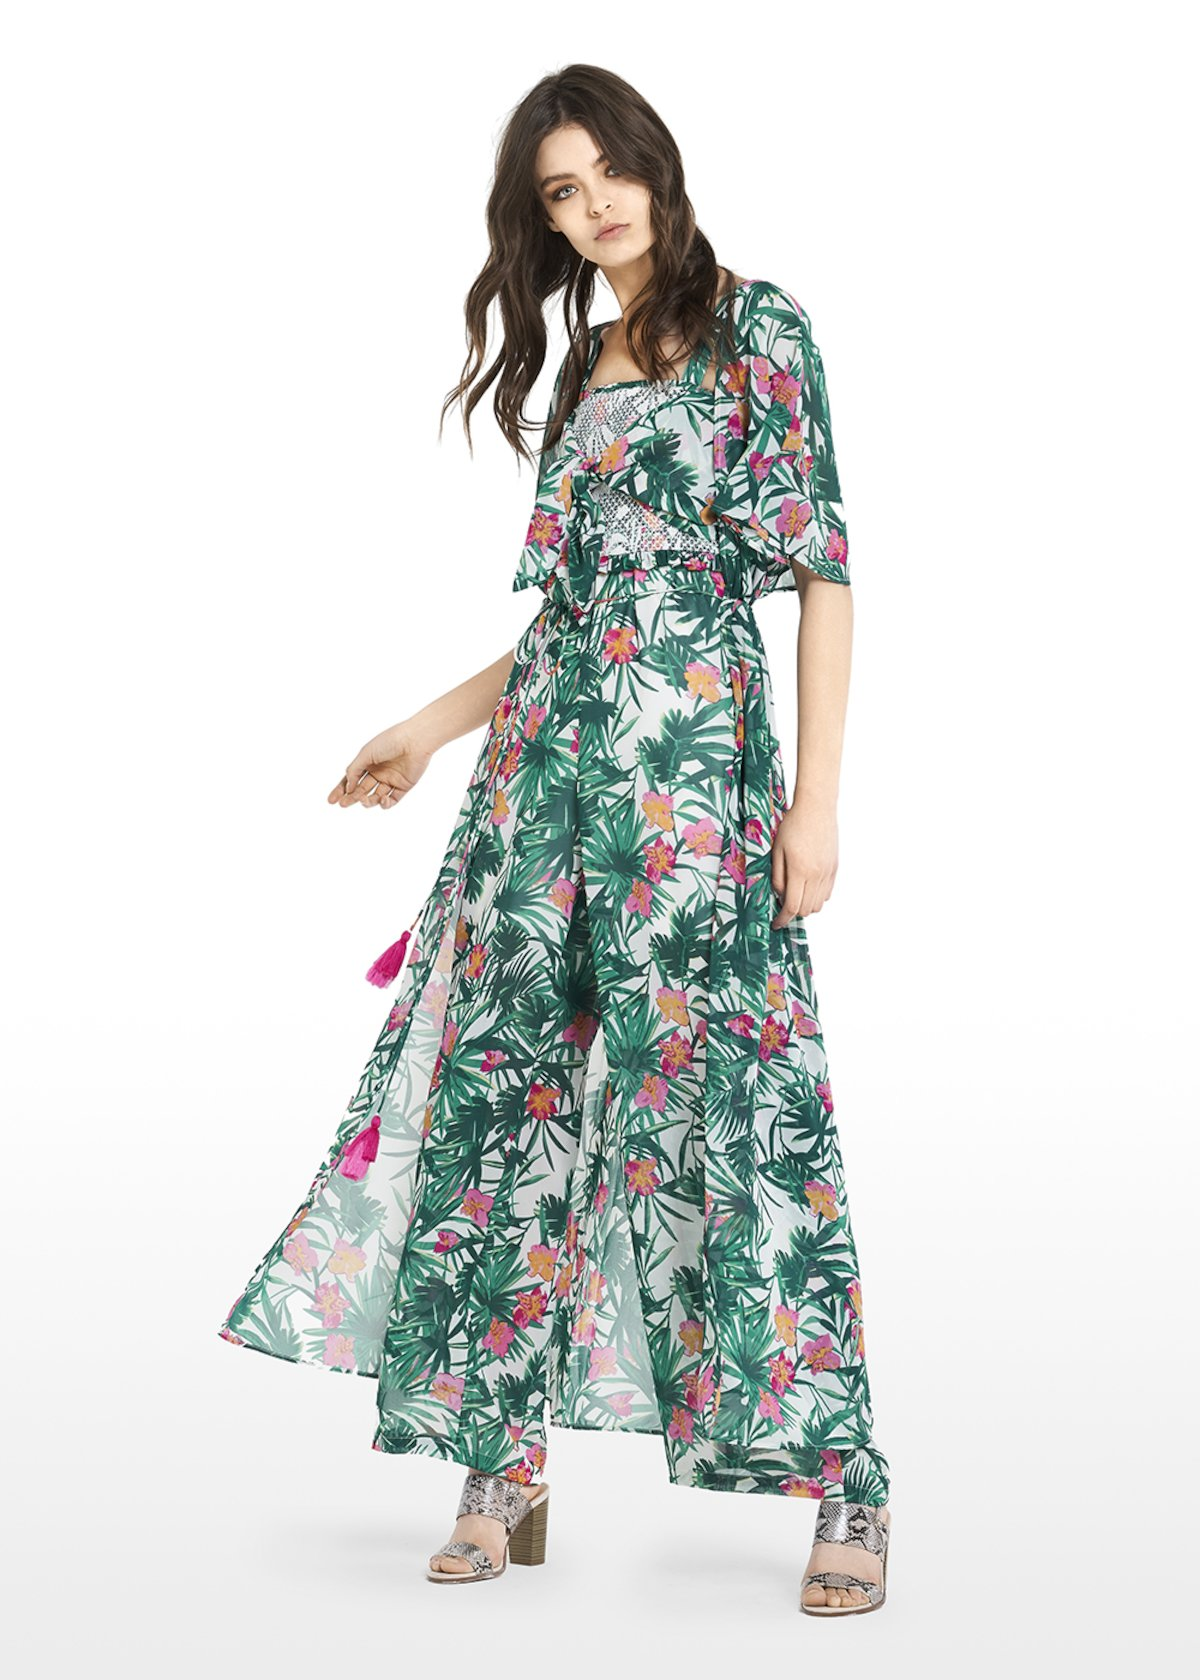 Carl shirt dress with tropical leaves and flowers print - White\ Amazon\ Fantasia - Woman - Category image